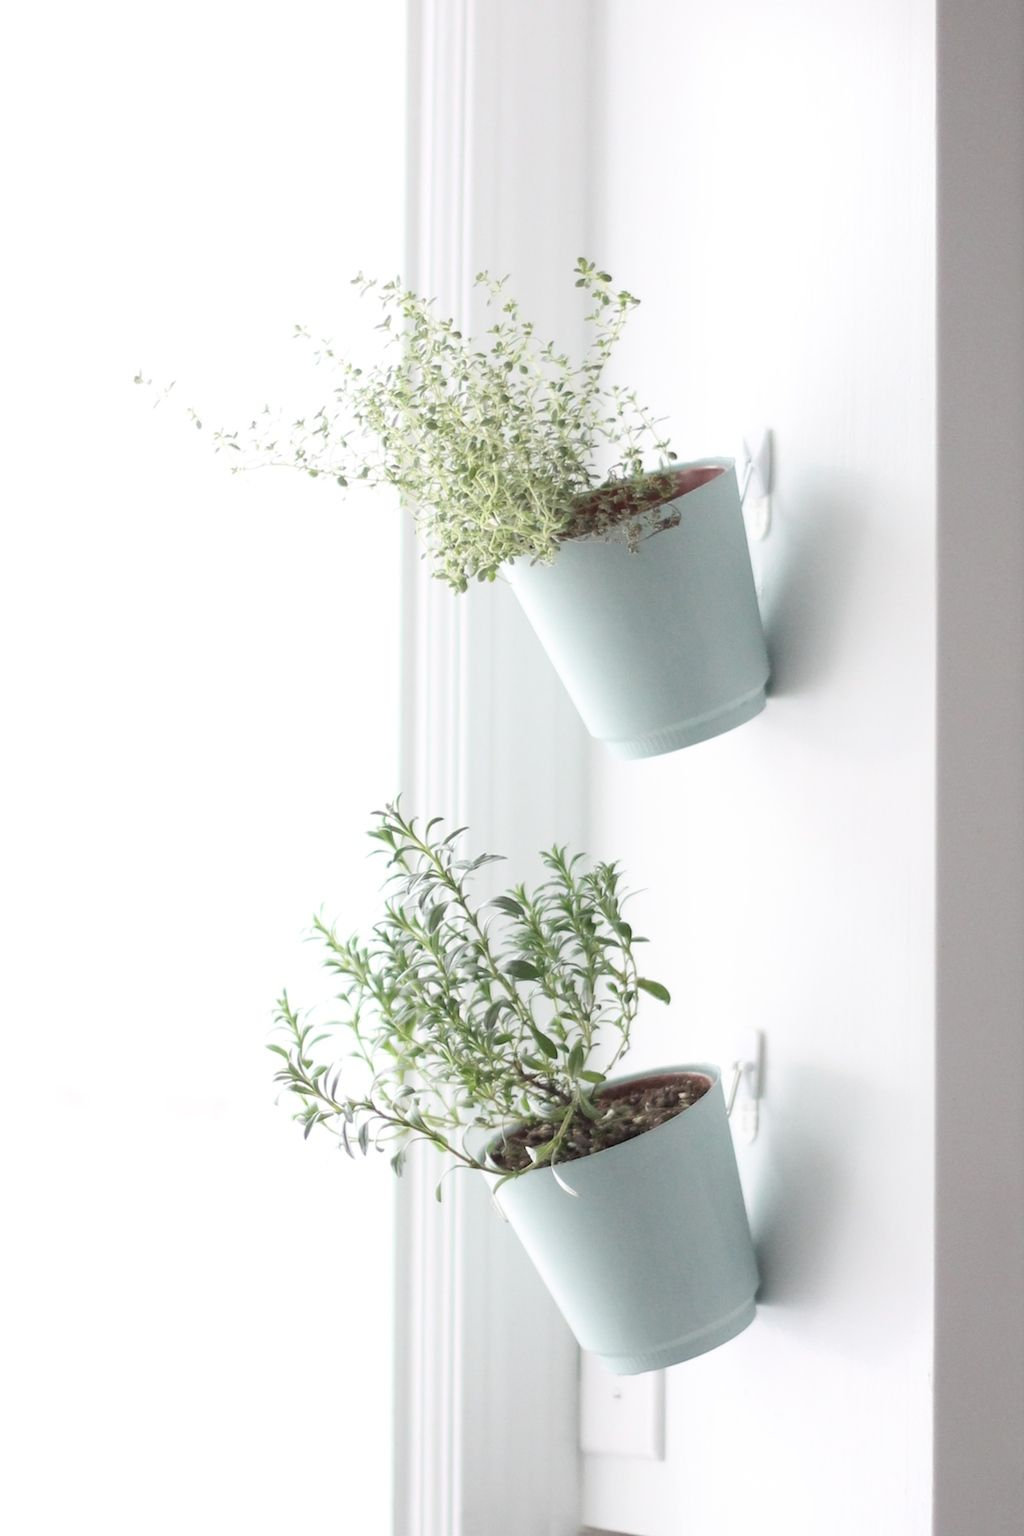 Kitchen Herb Garden Planter Hanging Herb Planters Indoor Herb Garden Gardens Planters And